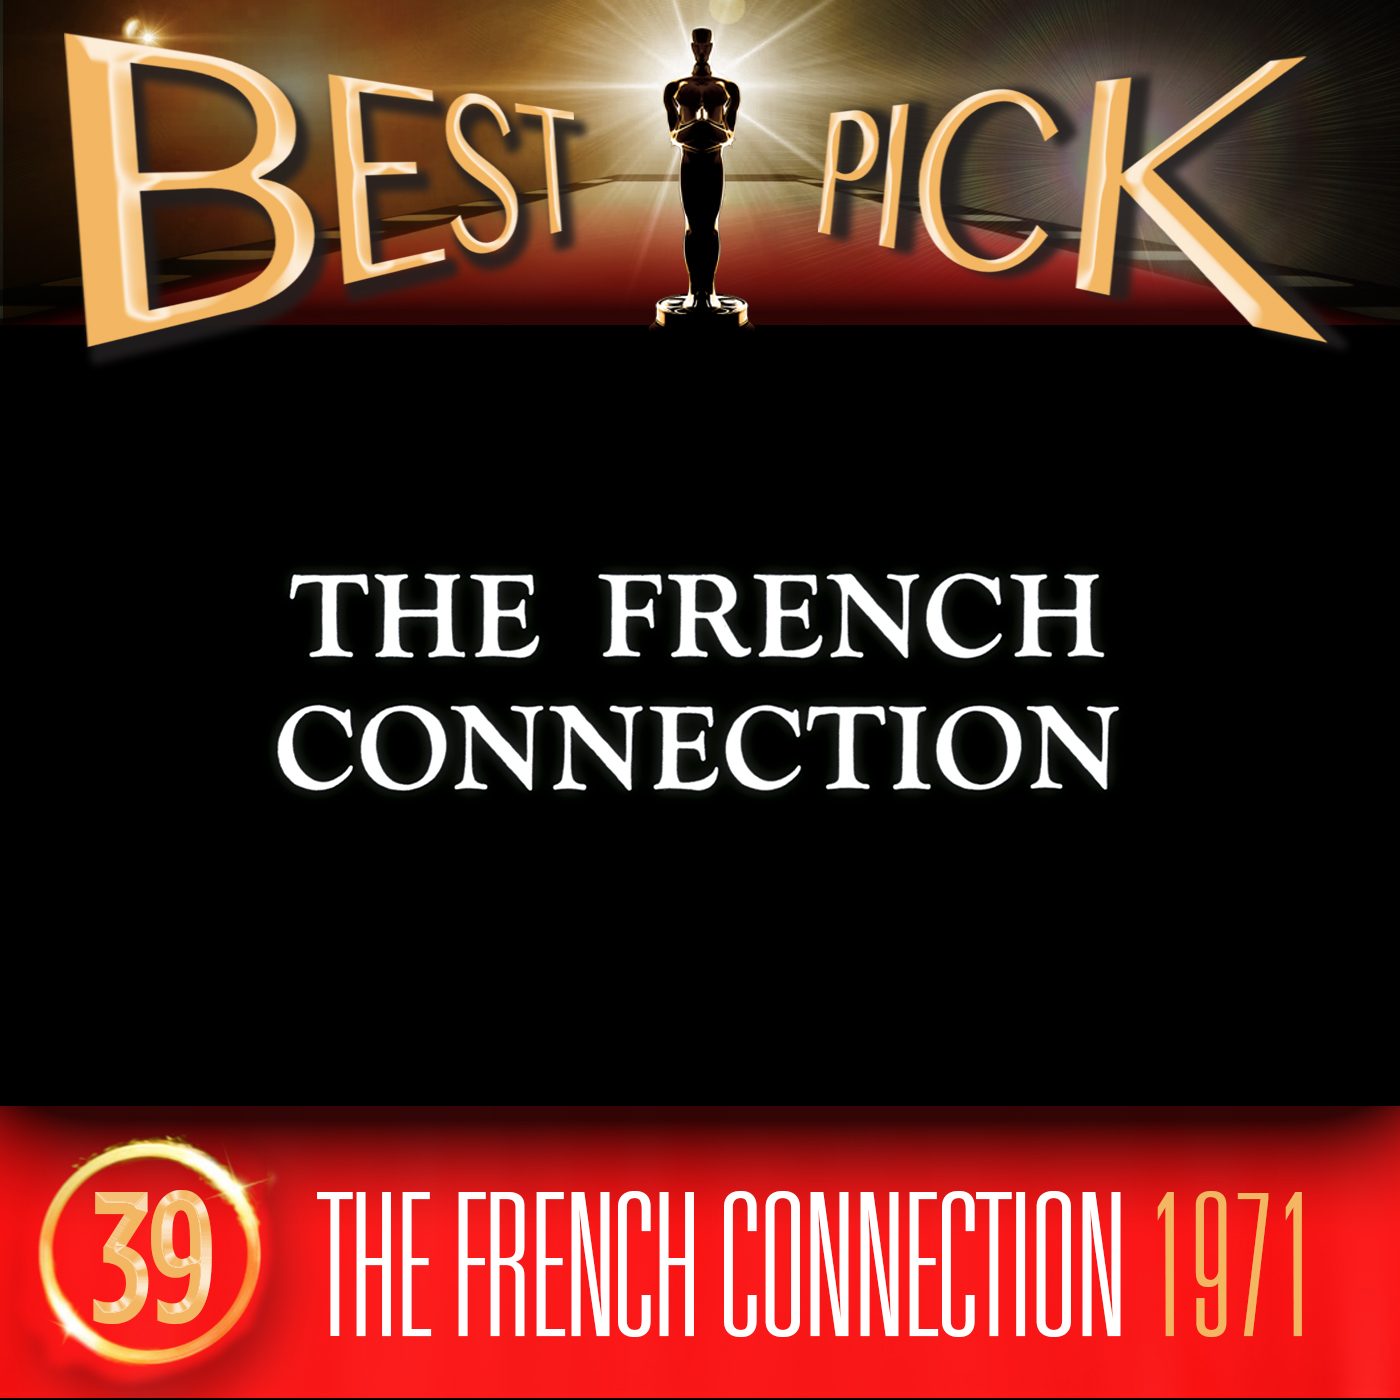 Episodes – The Best Pick Movie Podcast